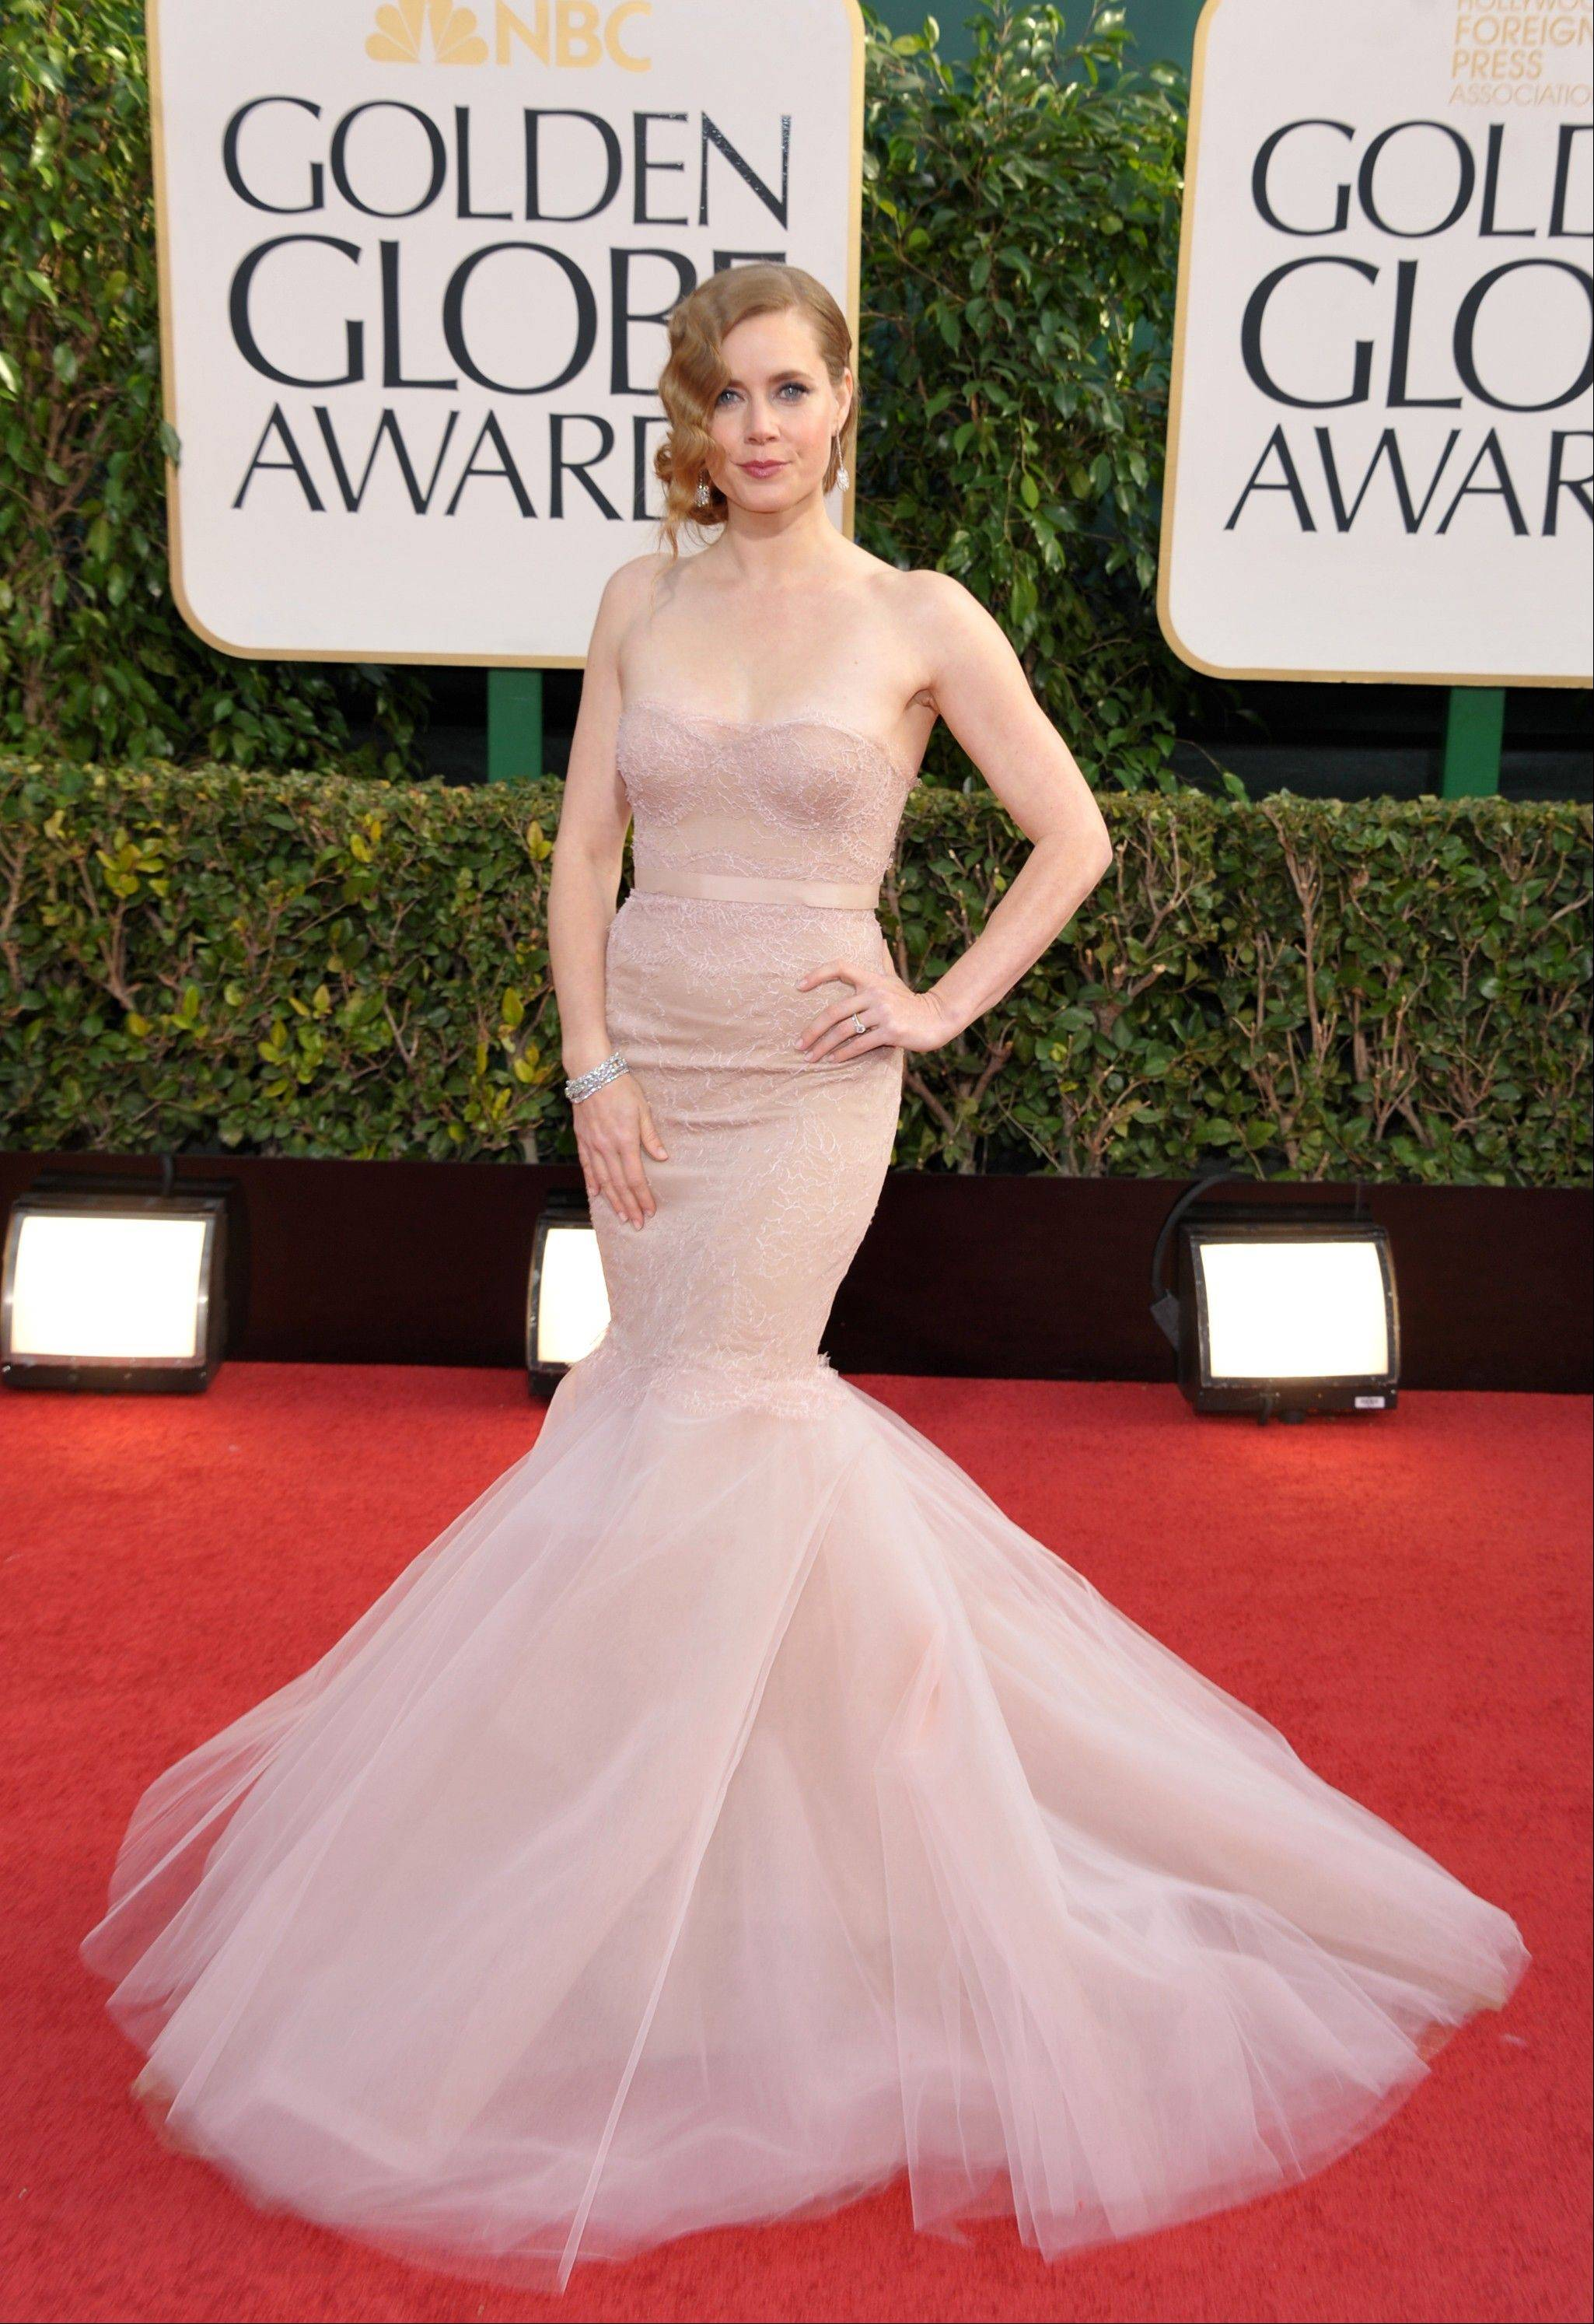 Amy Adams arrives at the 70th Annual Golden Globe Awards at the Beverly Hilton Hotel on Sunday Jan. 13, 2013, in Beverly Hills, Calif.